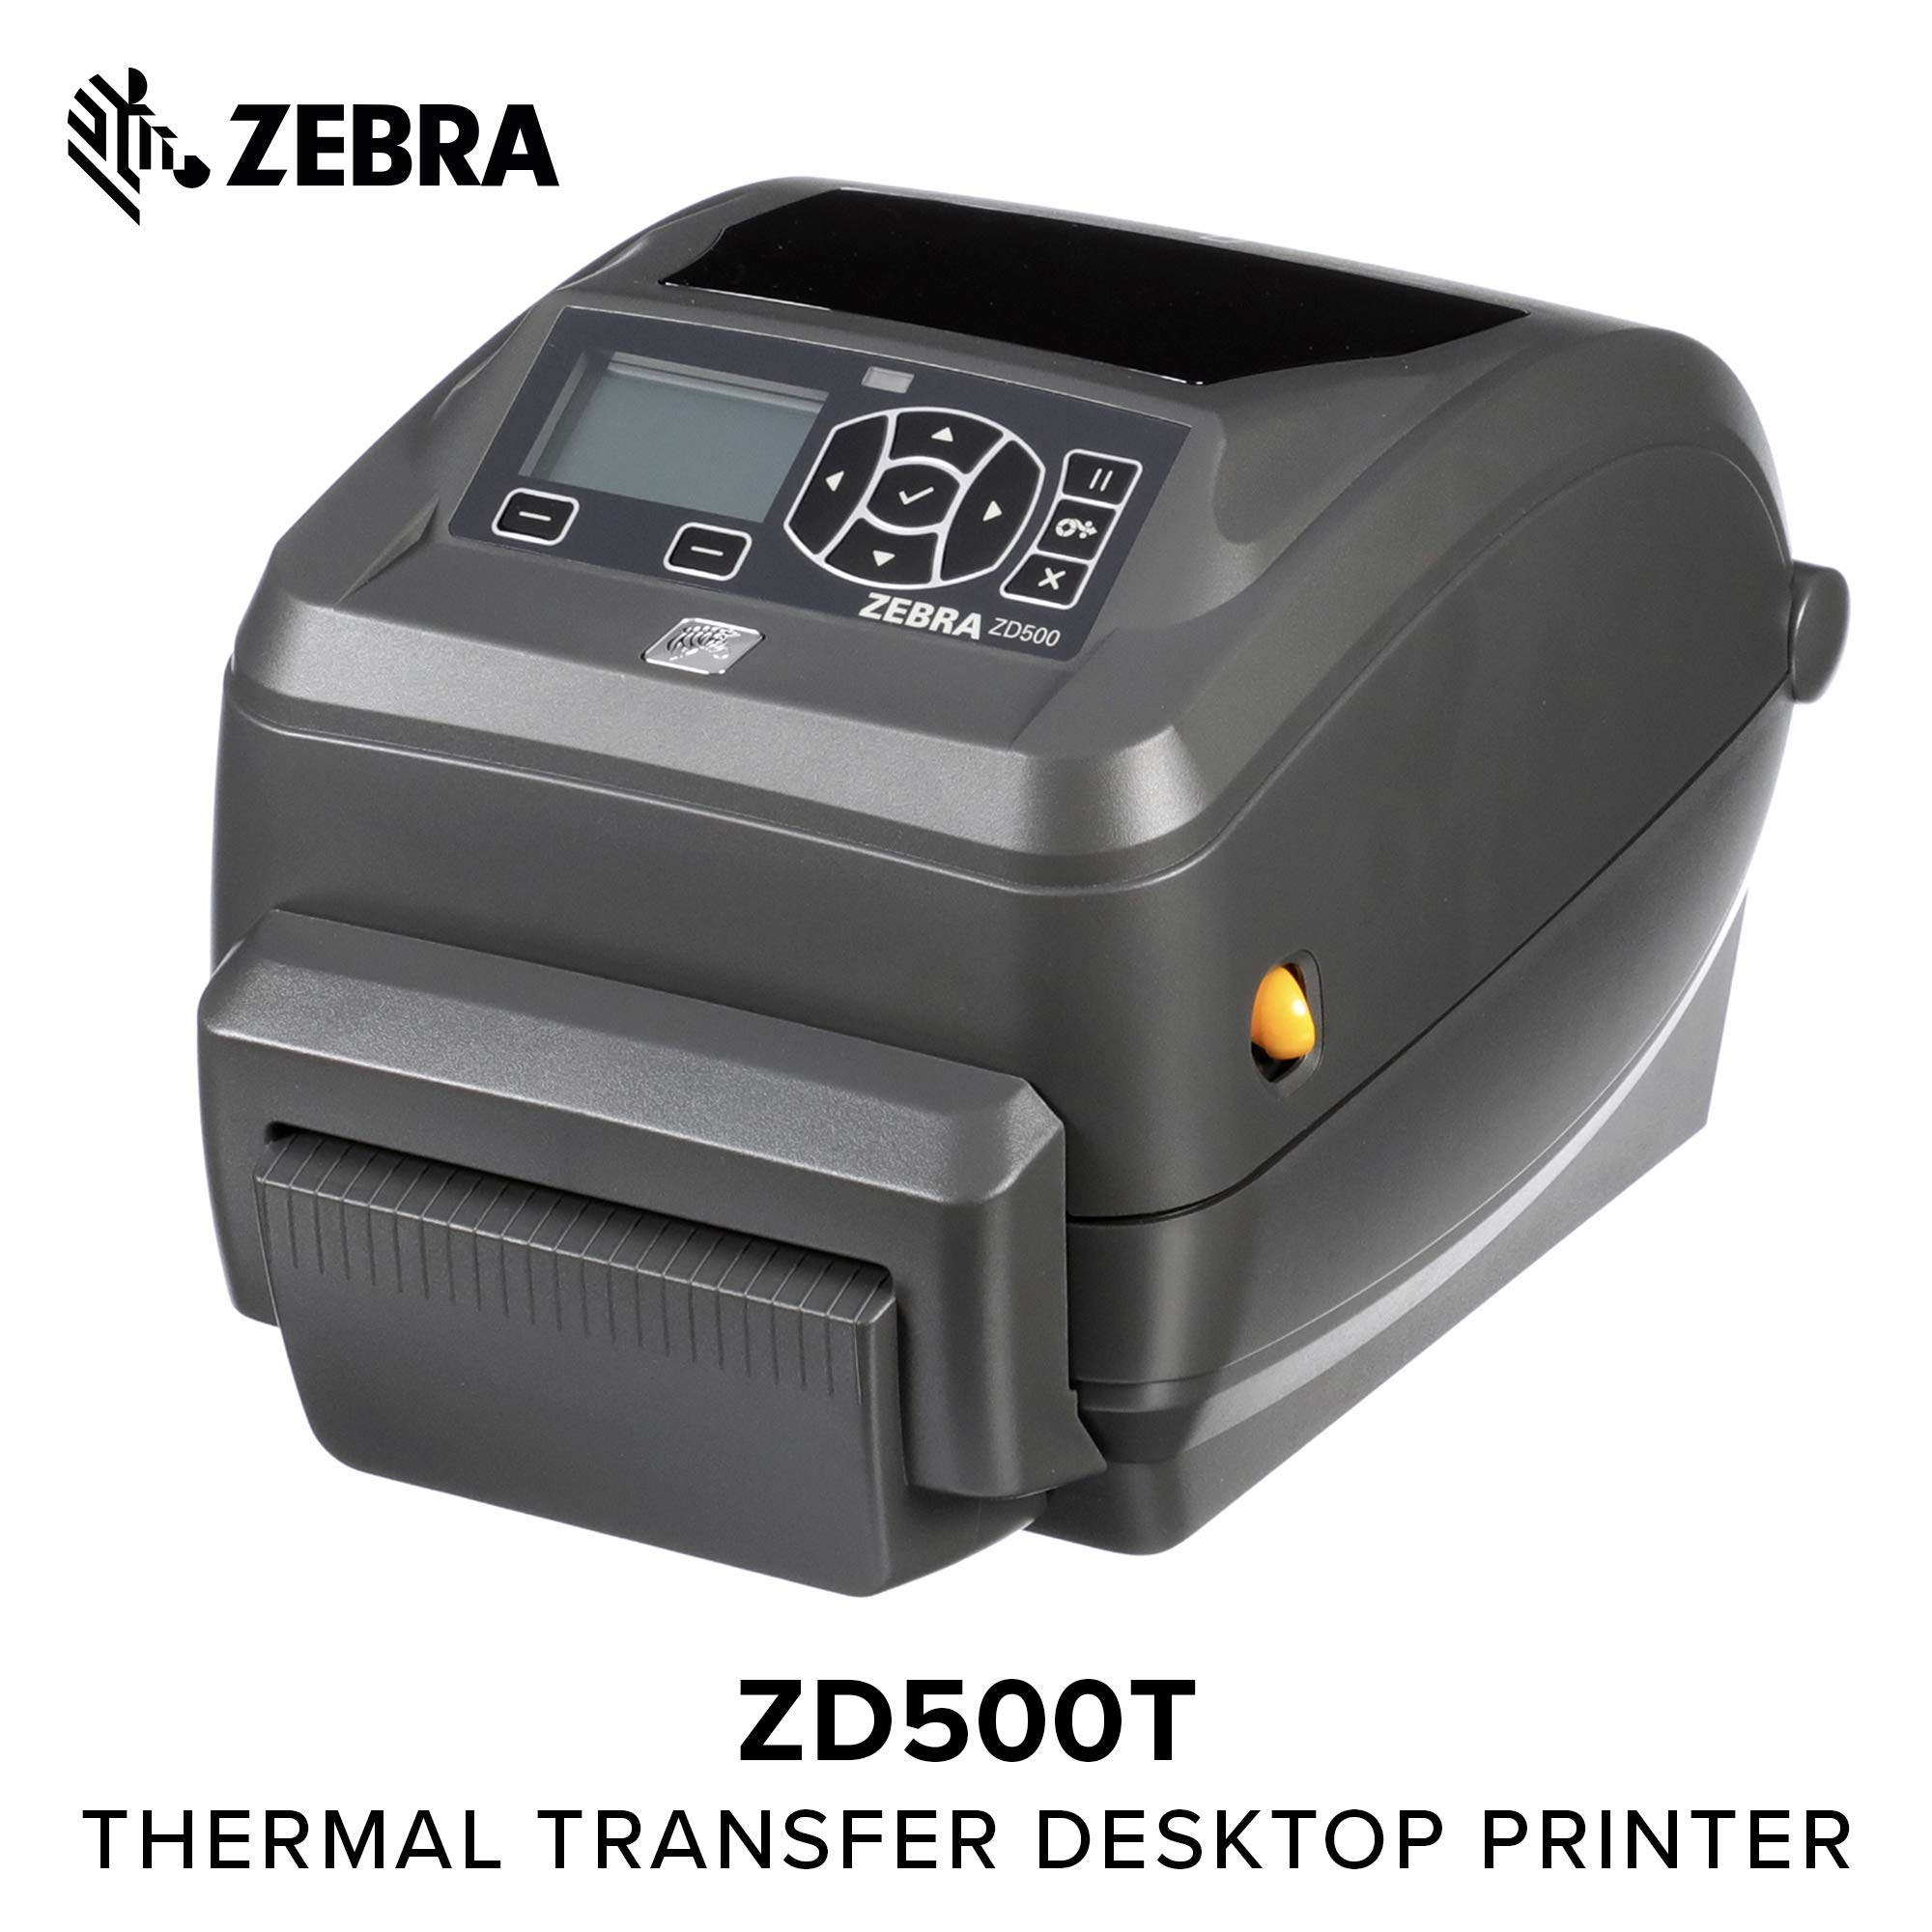 Zebra - ZD500t Thermal Transfer Desktop Printer for Labels and Barcodes - Print Width 4 in - 203 dpi - Interface: Ethernet, Parallel, Serial, USB - Cutter Preinstalled - ZD50042-T21200FZ